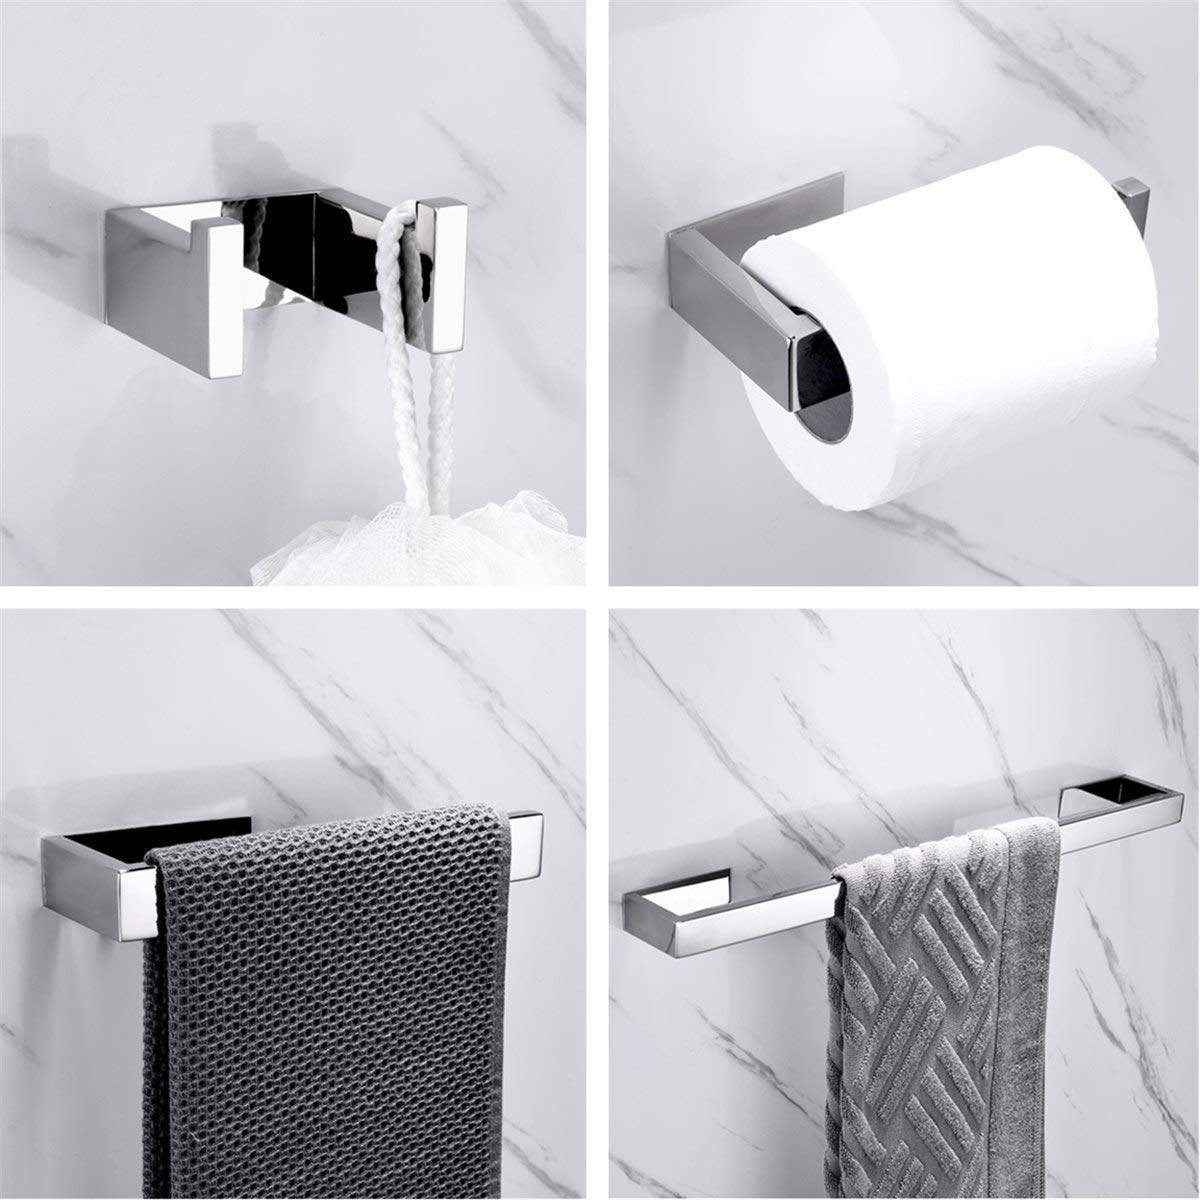 SUS304 Stainless Steel Adhesive Bathroom Accessories Set Chrome Silver Towel Bar Towel Hook Wall Towel Ring Toilet Paper Holder